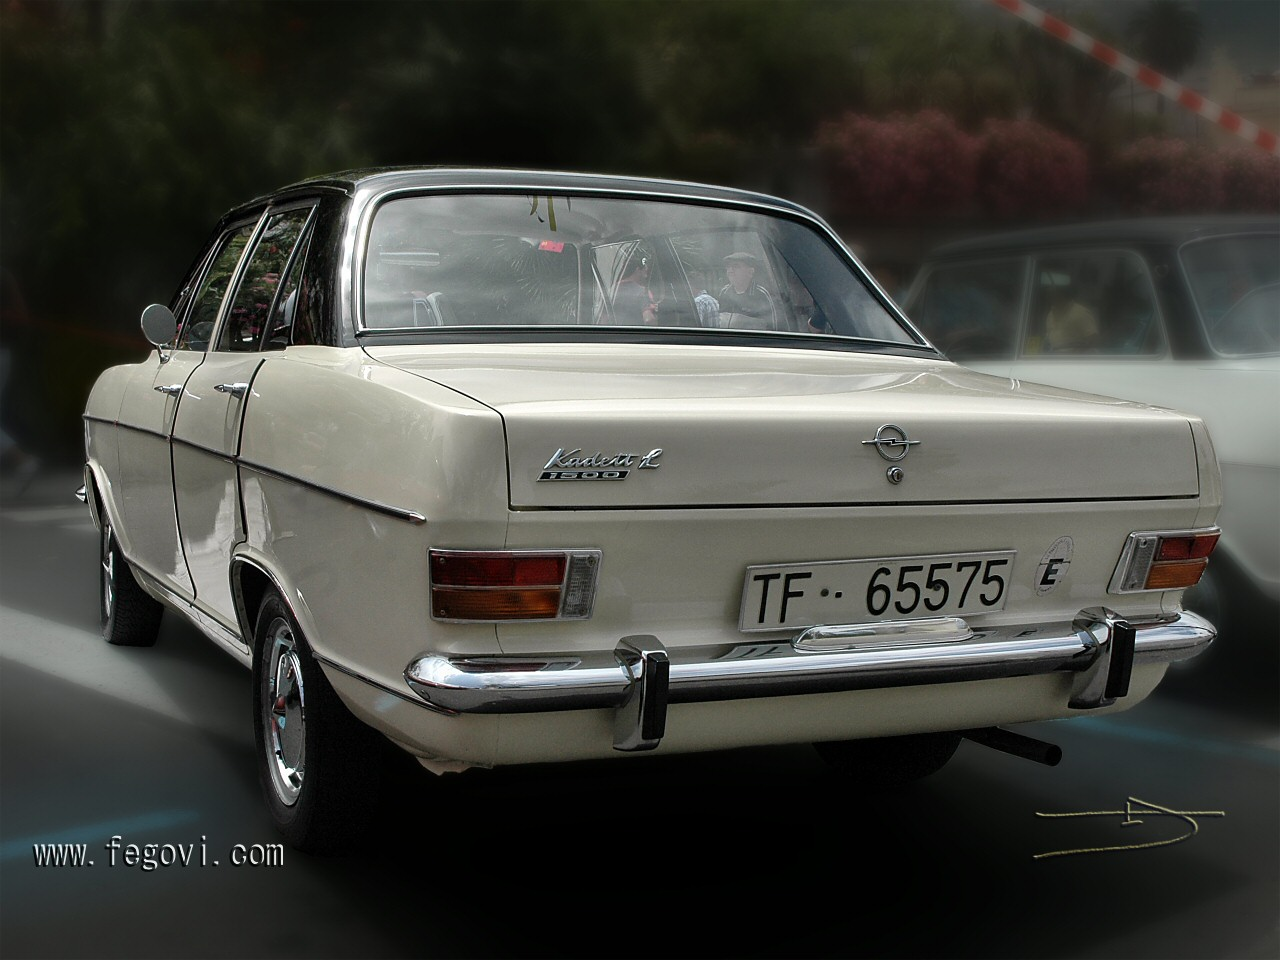 Make, Opel. Model, Kadett L